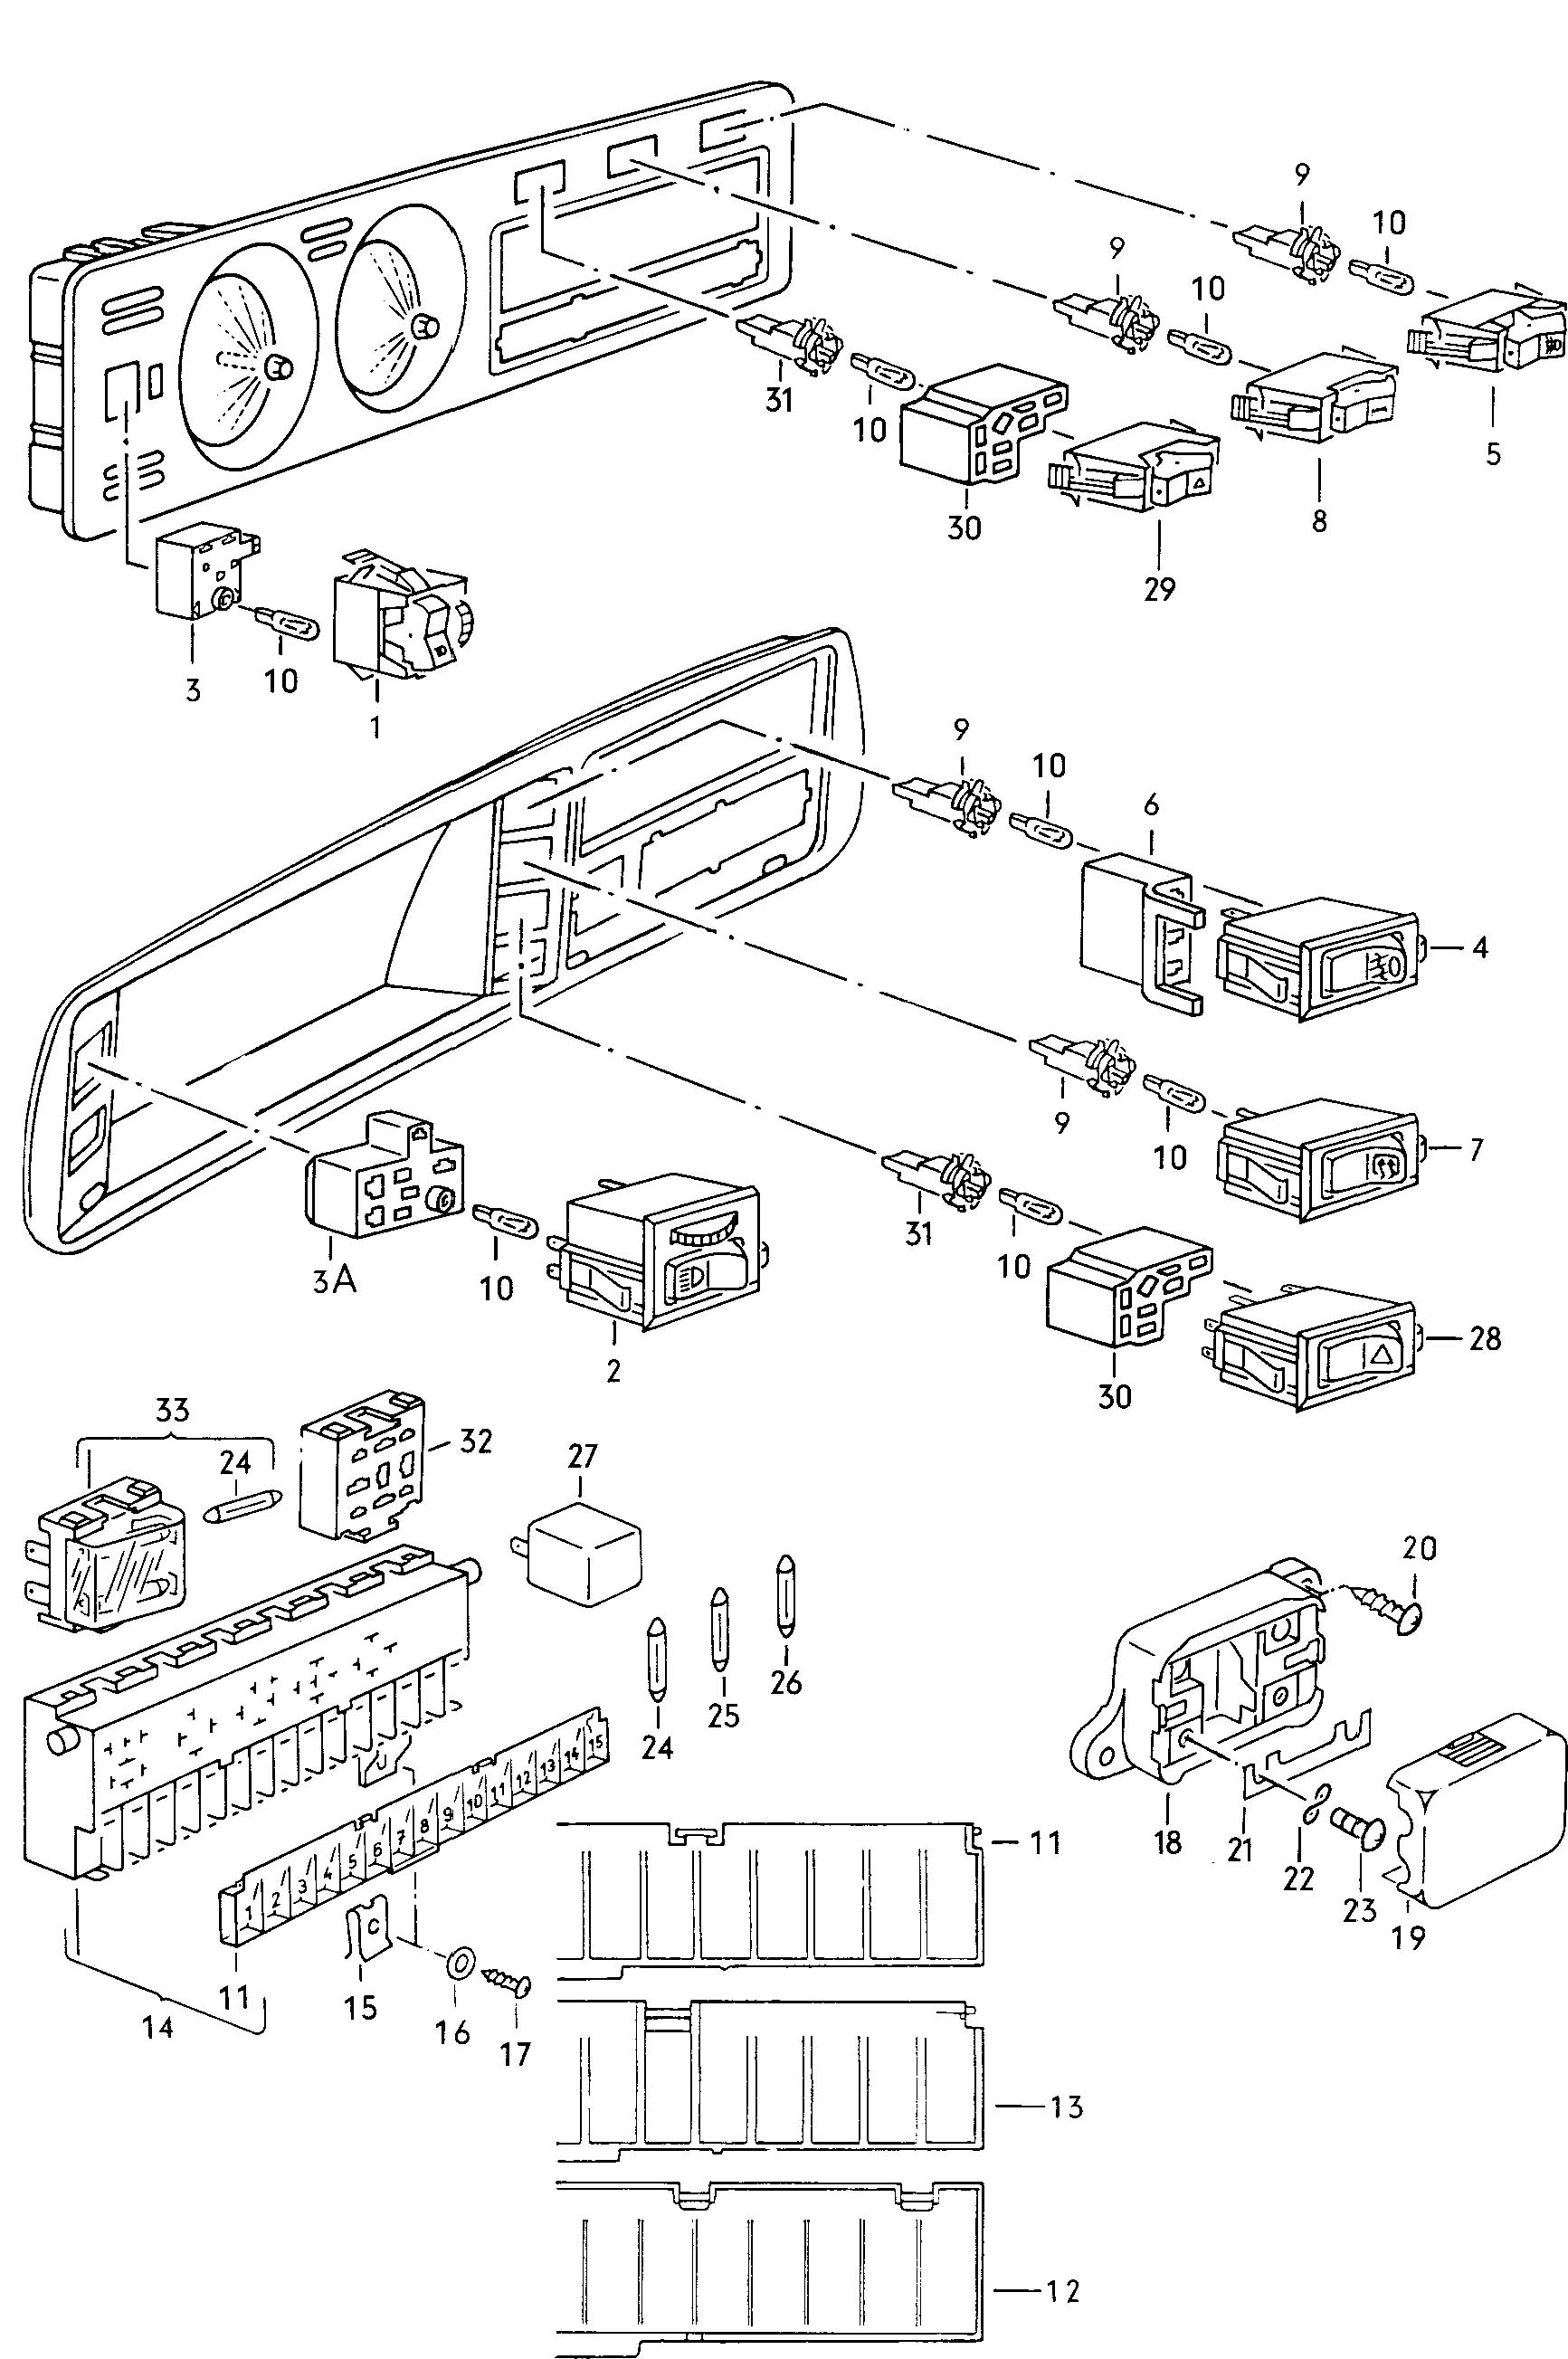 2011 Vw Routan Fuse Box Diagram Manual Guide Wiring 2012 Get Free Image About Jetta Map